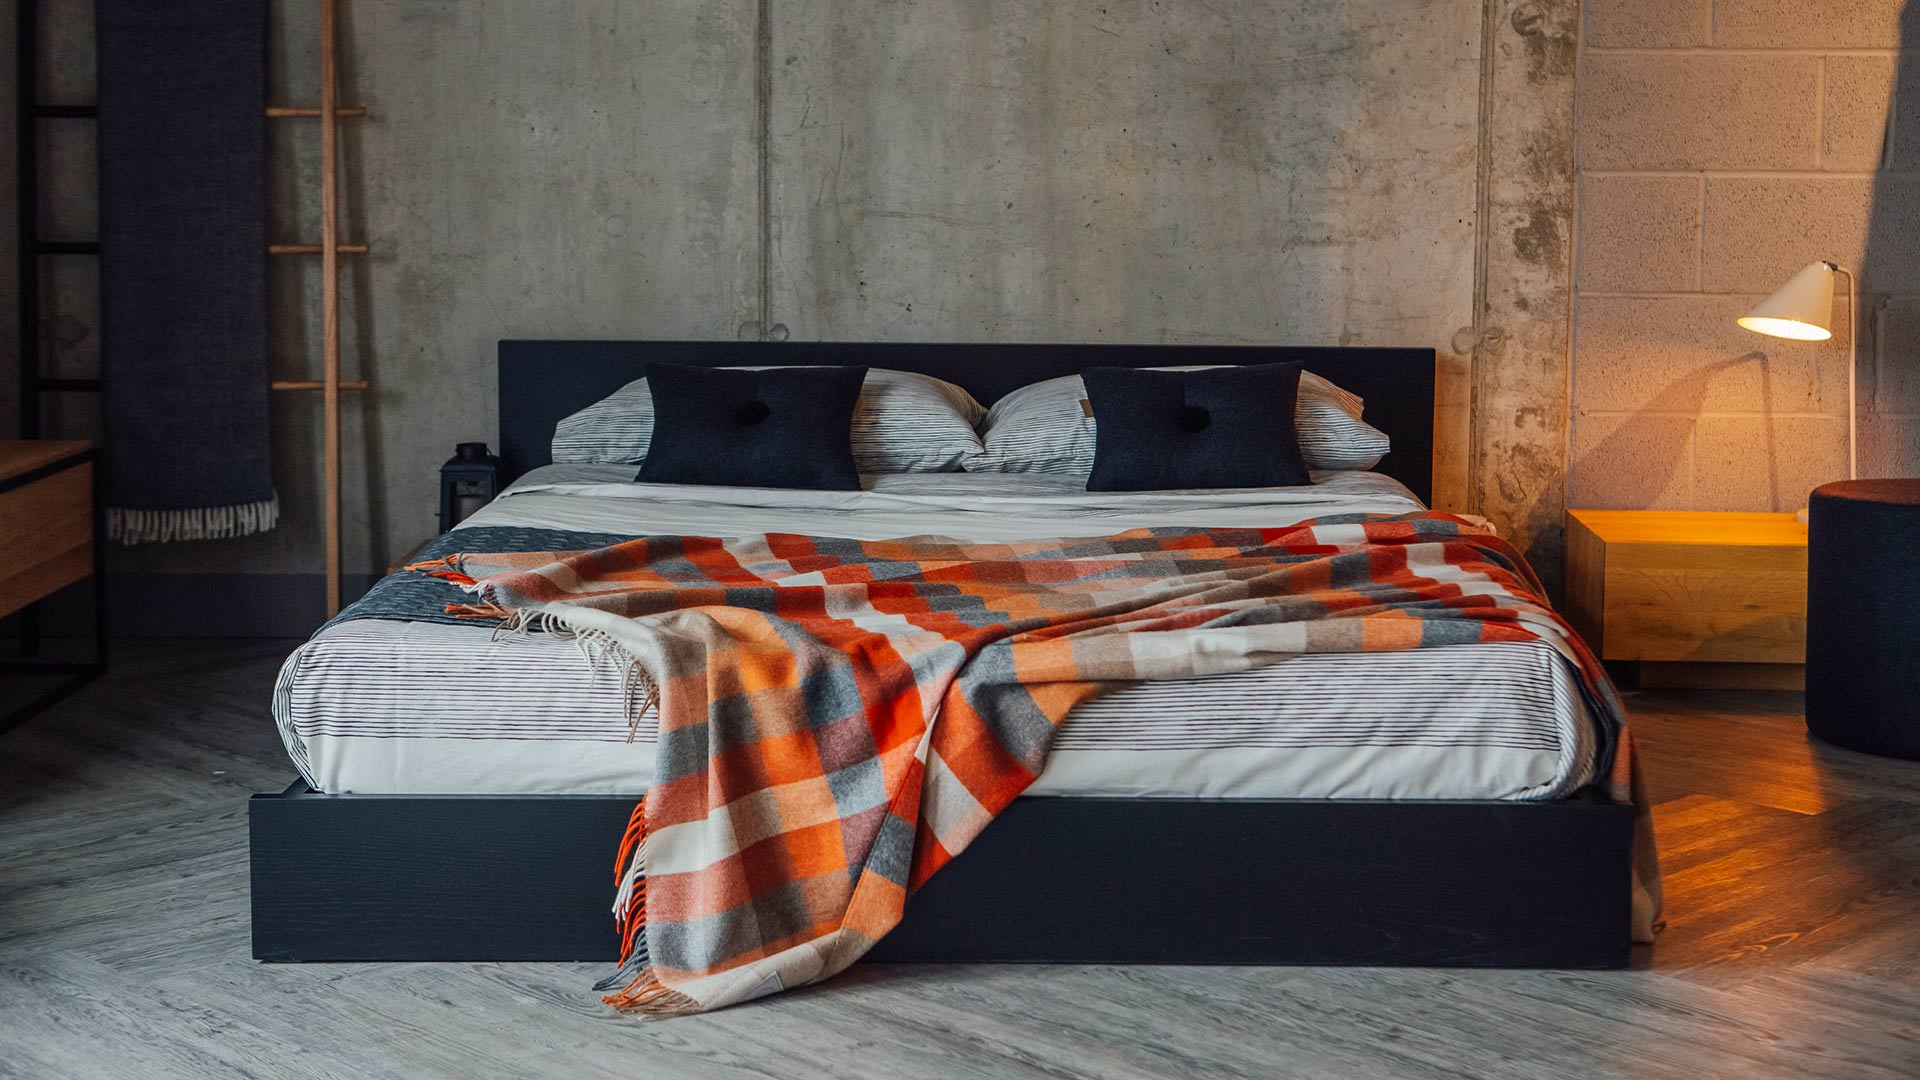 Kulu is a low solid wood bed with optional attached side tables